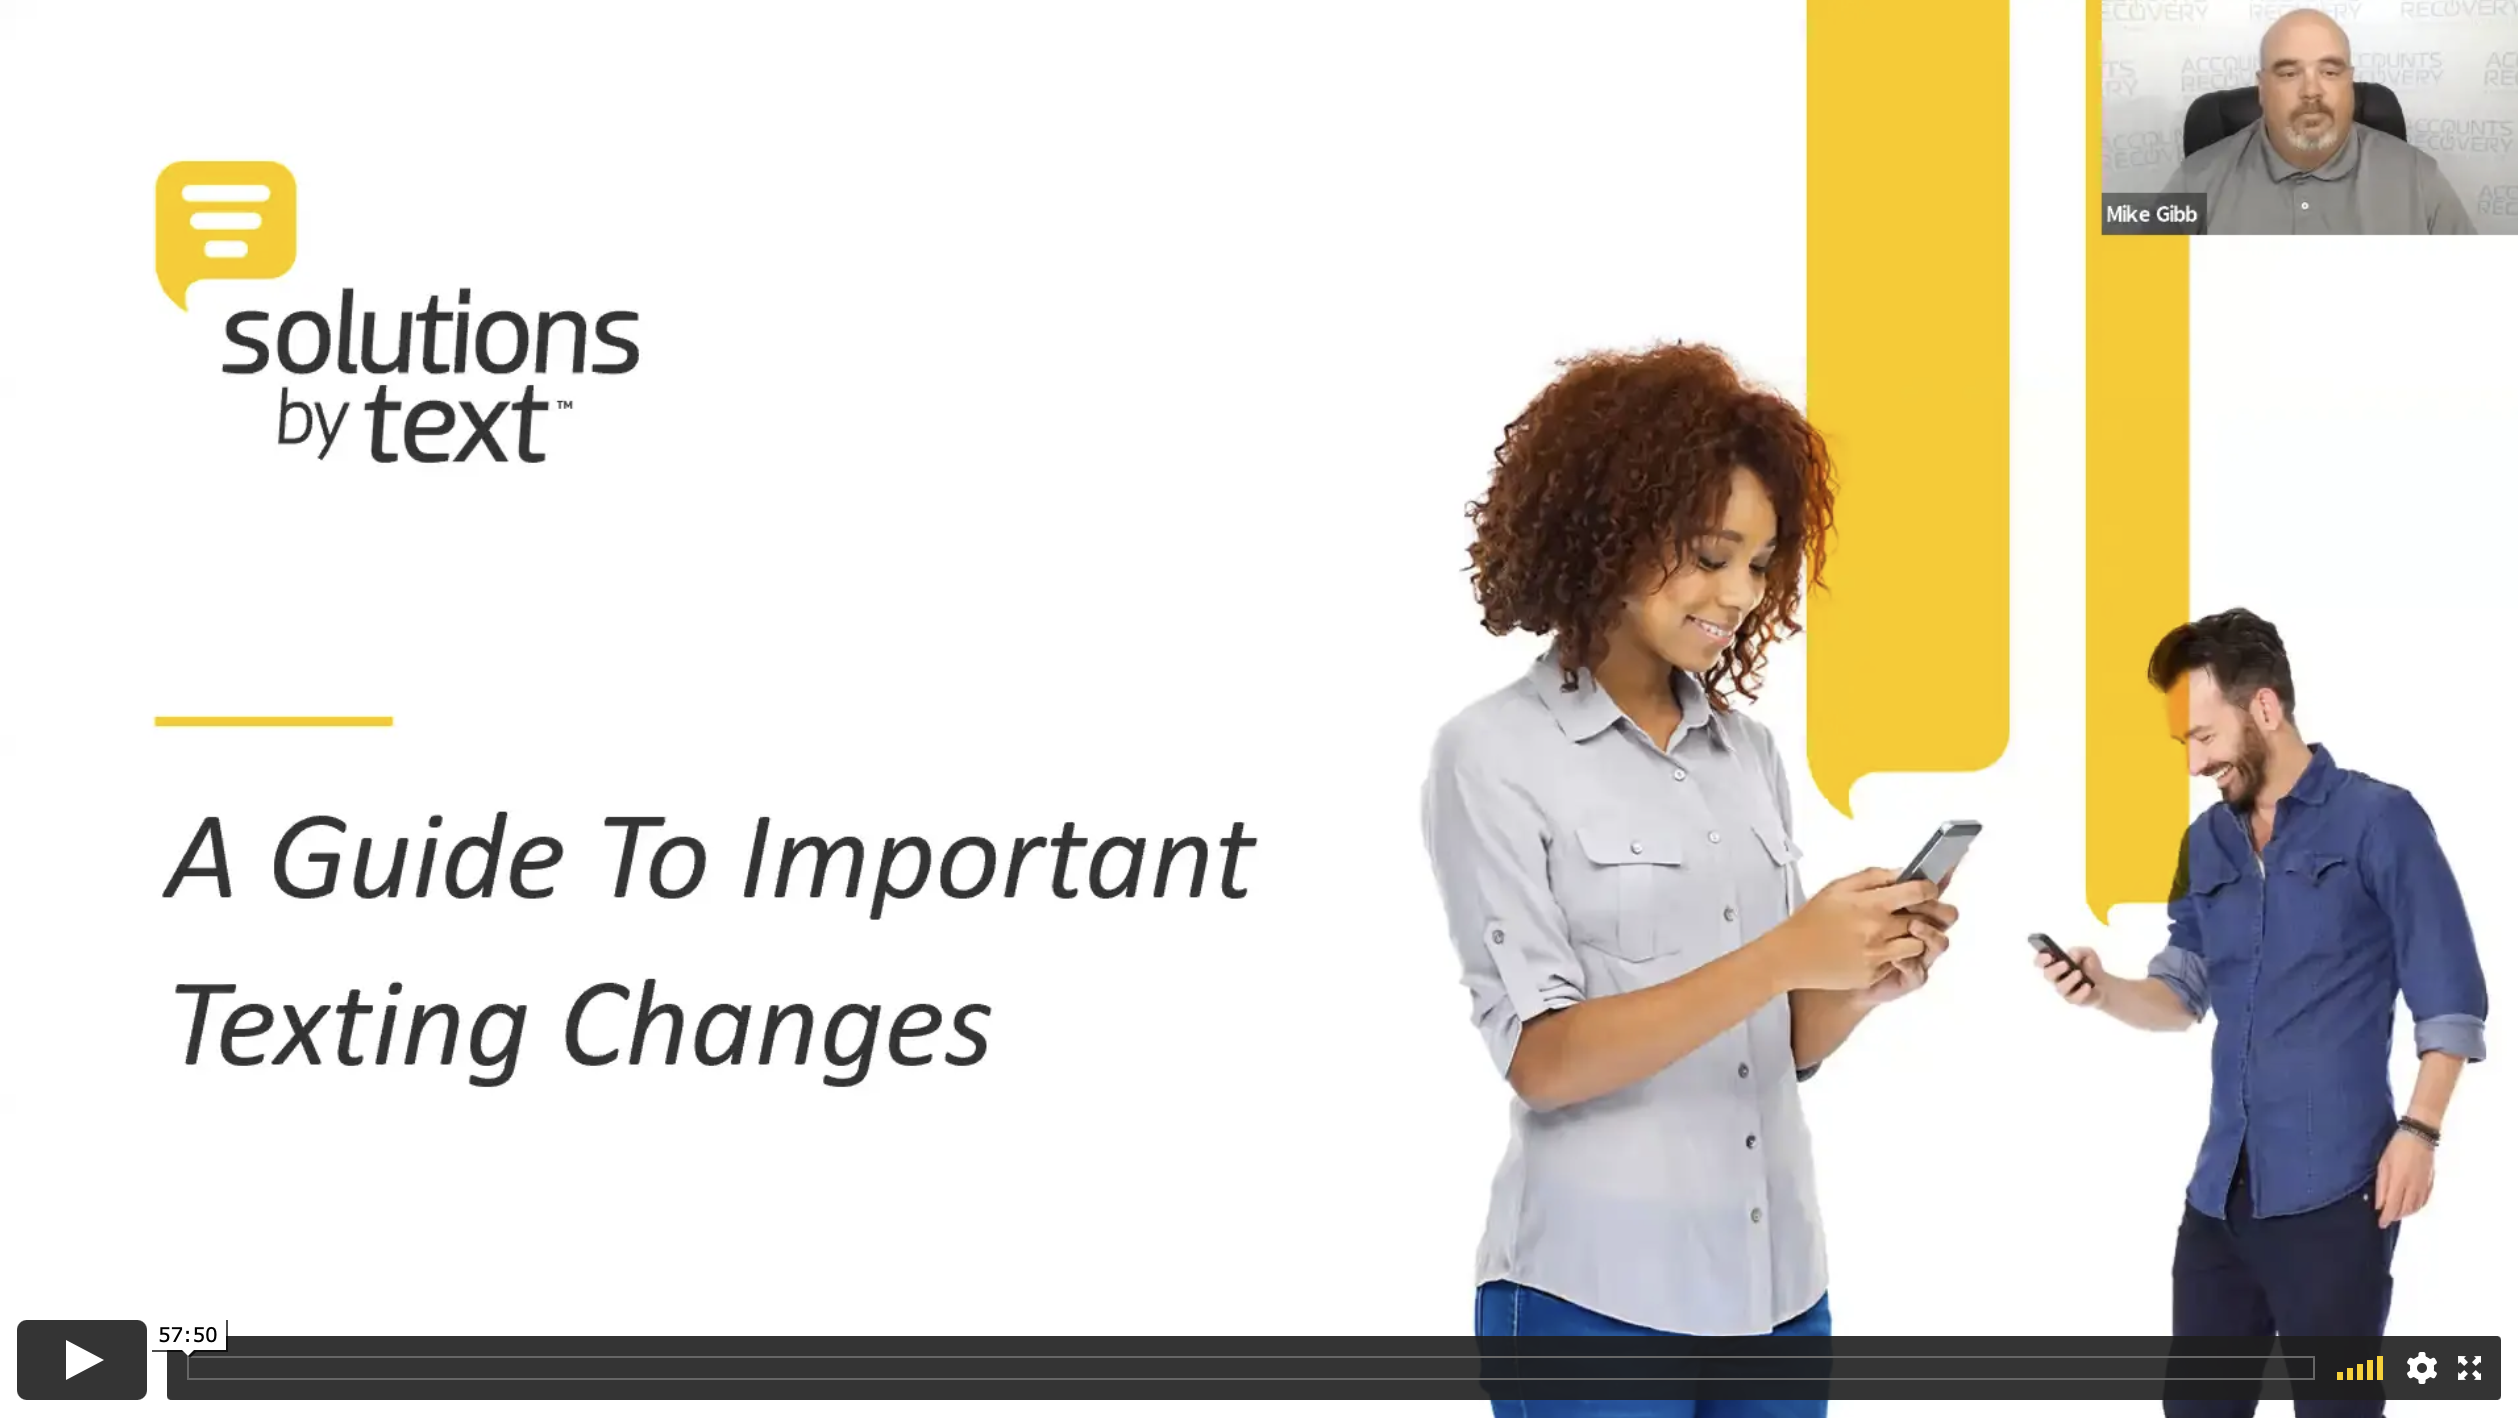 A Guide To Important Texting Changes